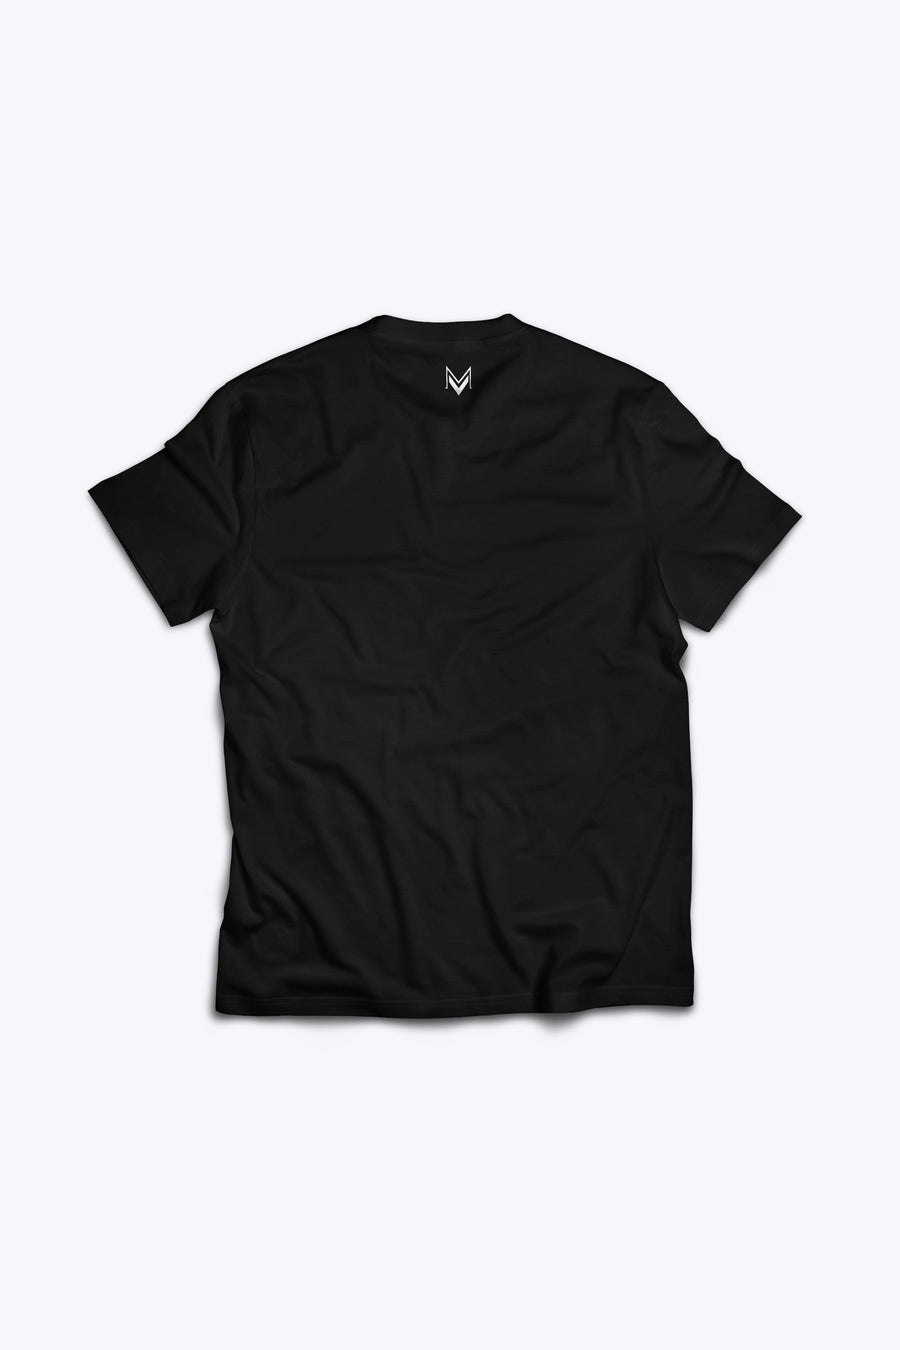 Working out Black Tee - Modern Vision